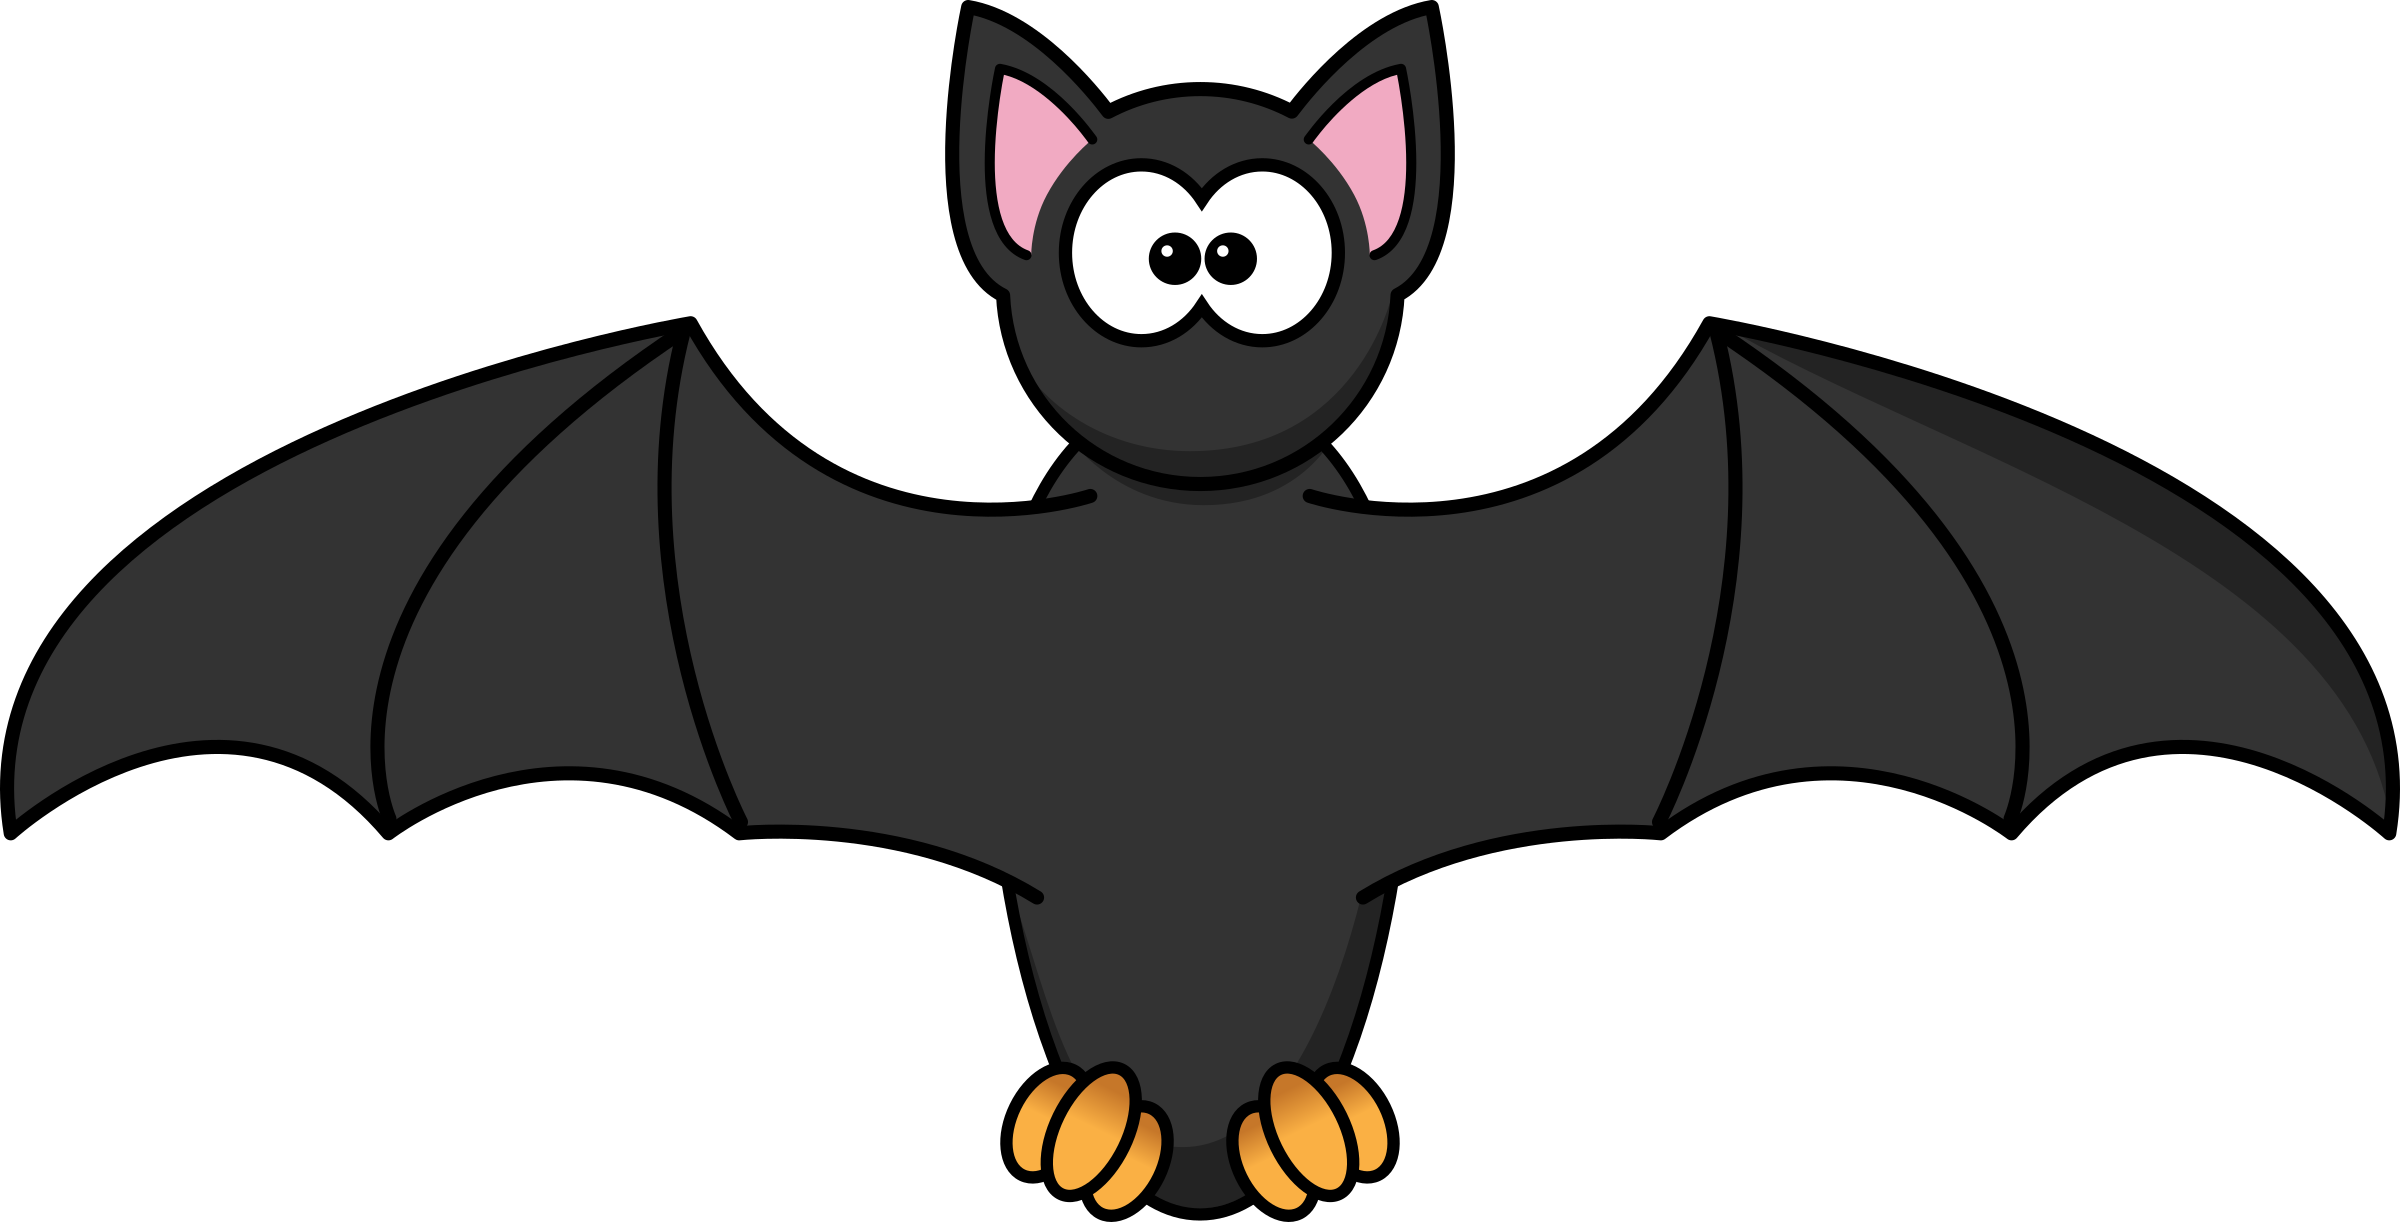 Working clipart hurry. Lavishly vampire bat cartoon